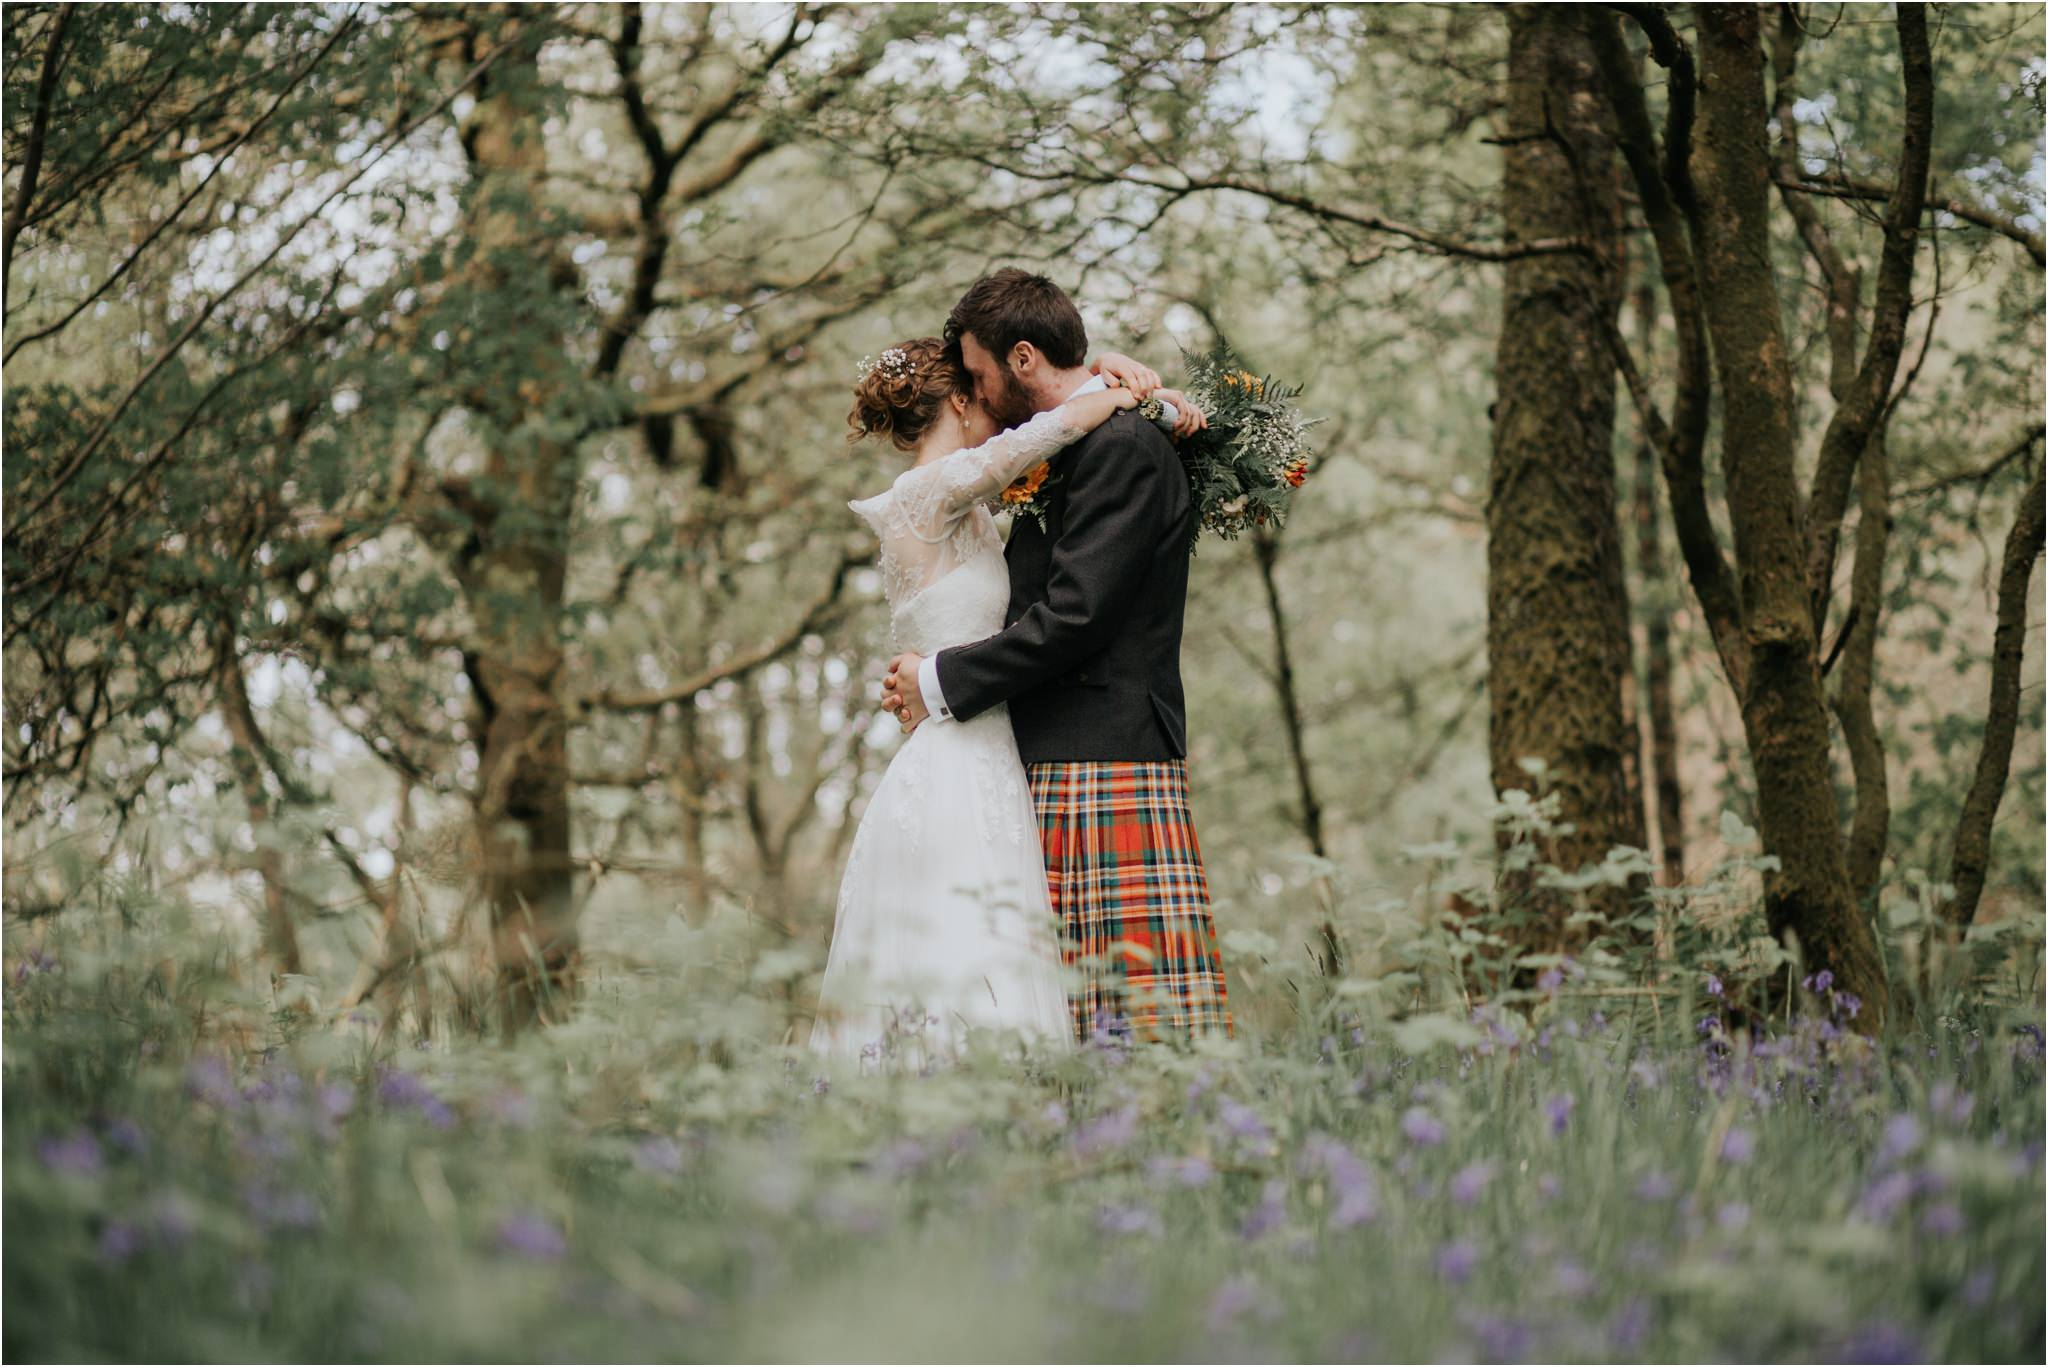 Photography 78 - Glasgow Wedding Photographer - Fraser Thirza - Killearn Village Hall - Three Sisters Bake Wedding_0097.jpg